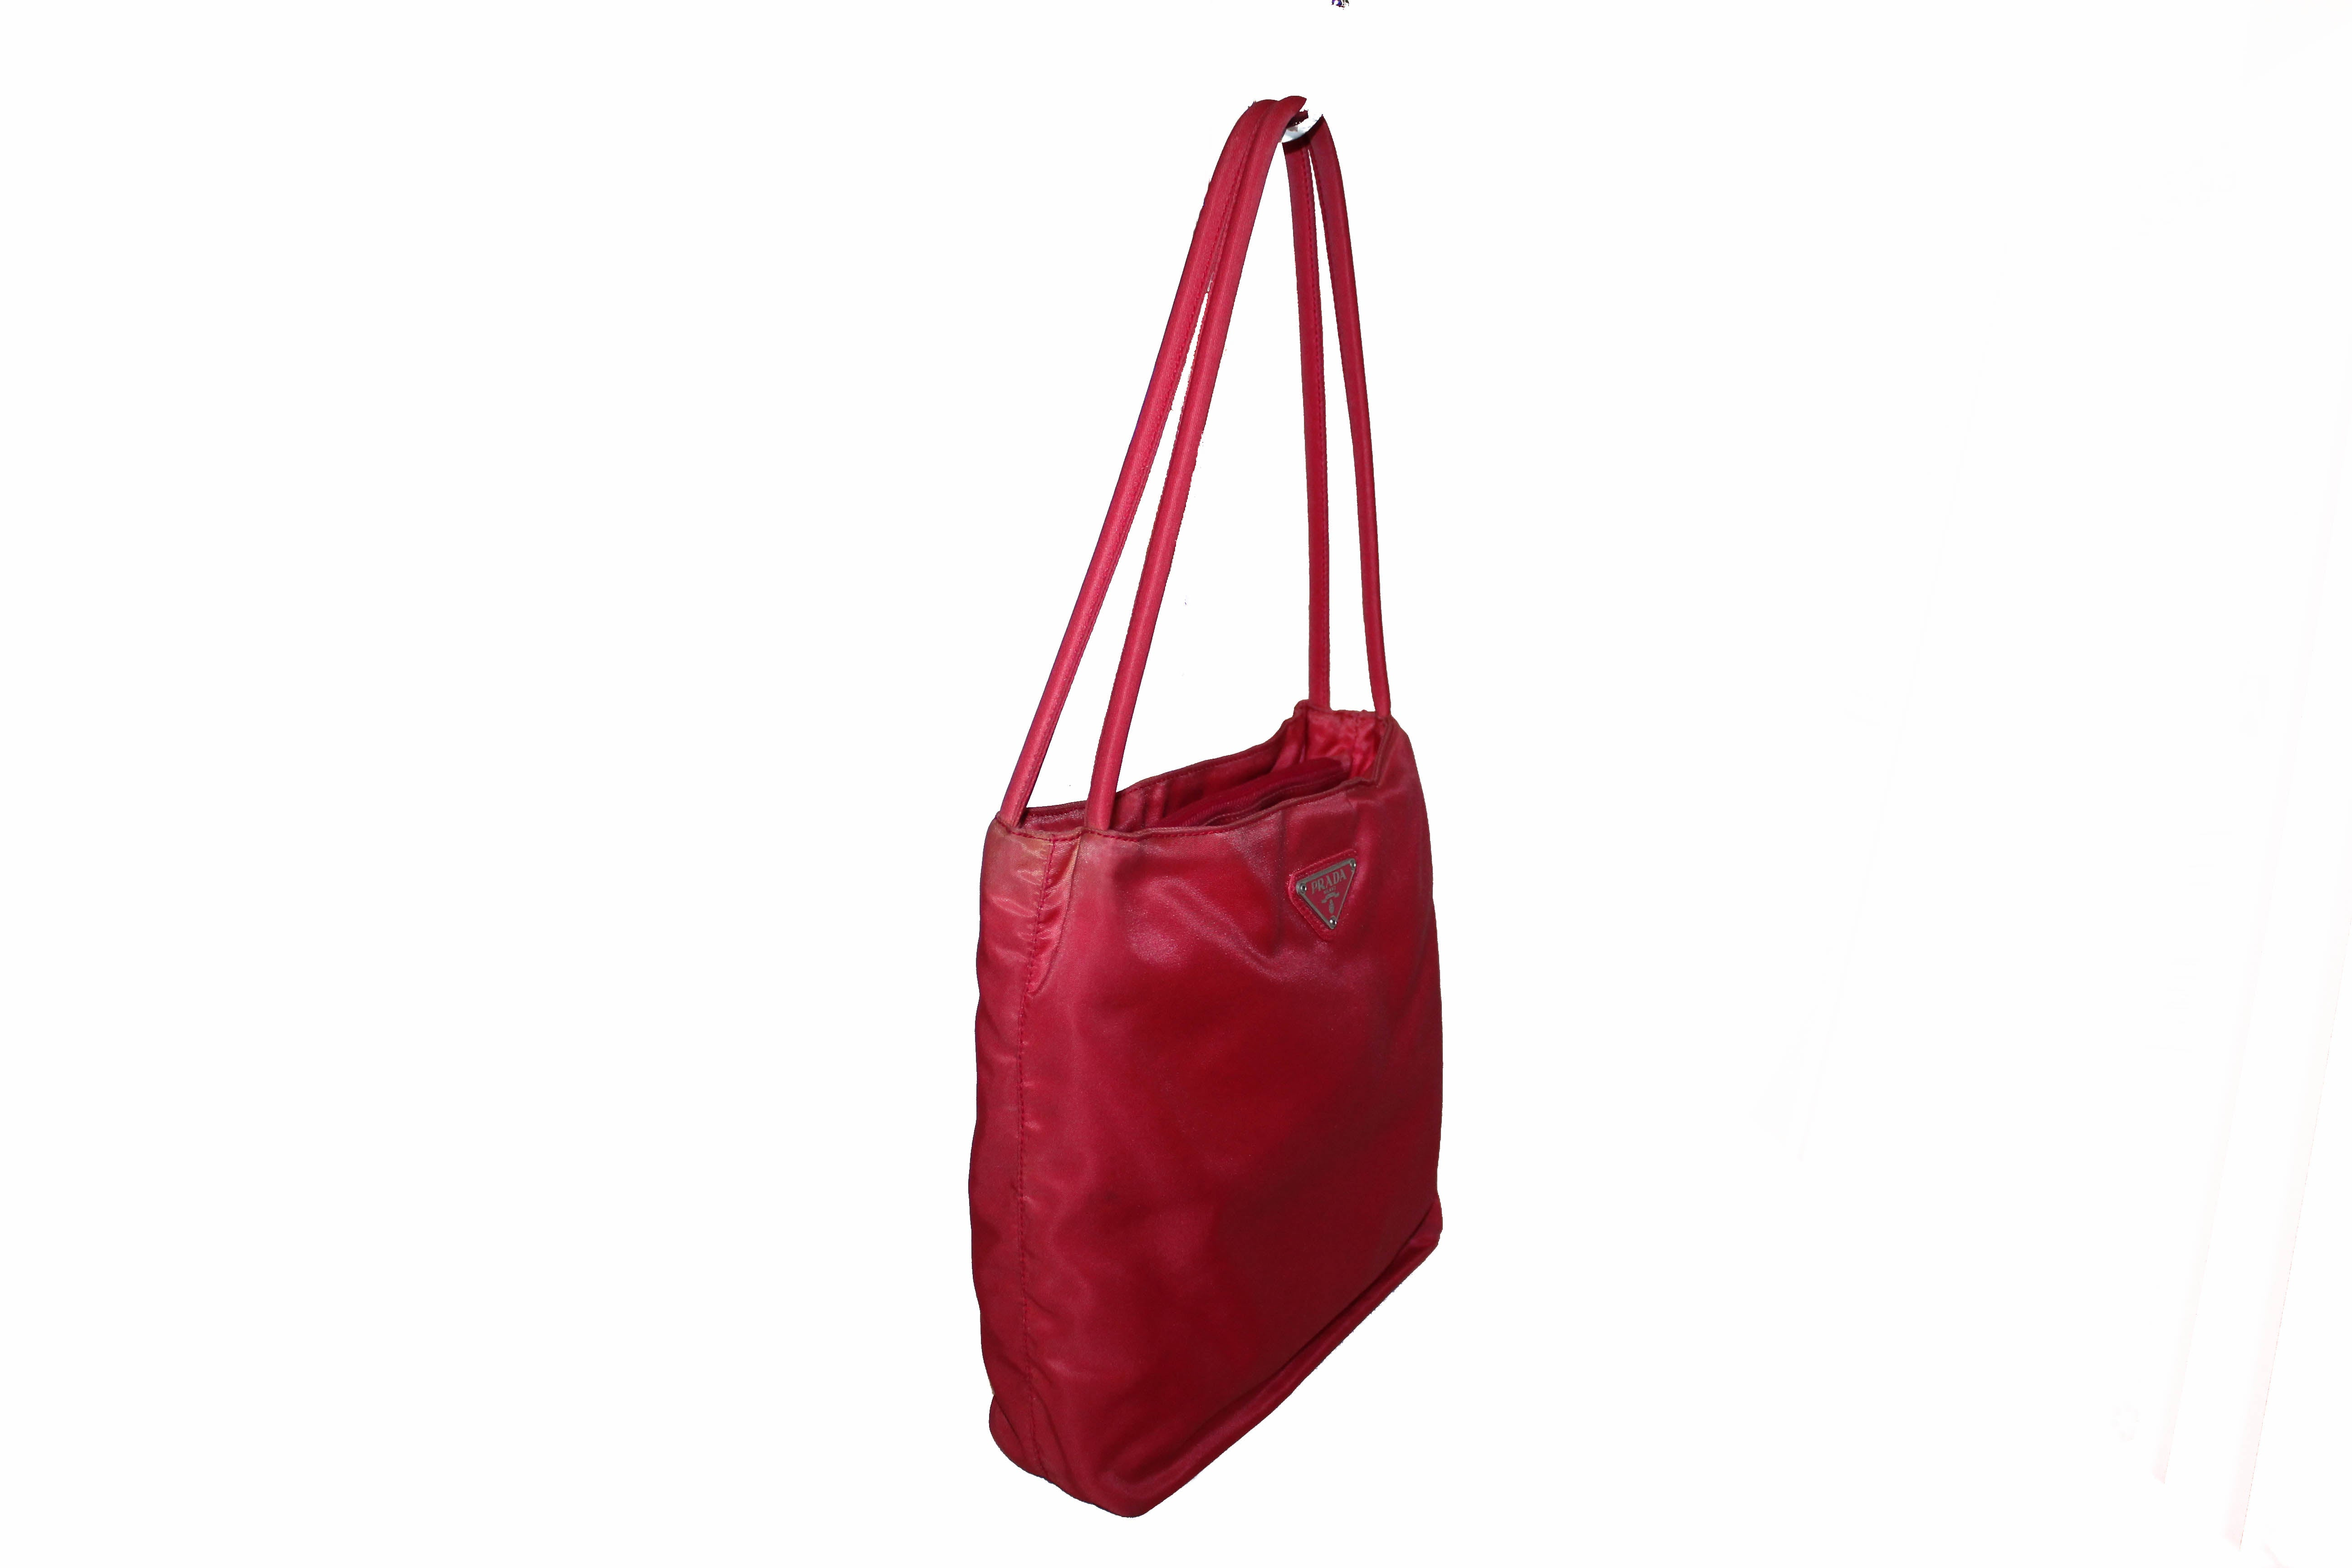 Authentic Prada Red Nylon Small Shoulder Bag